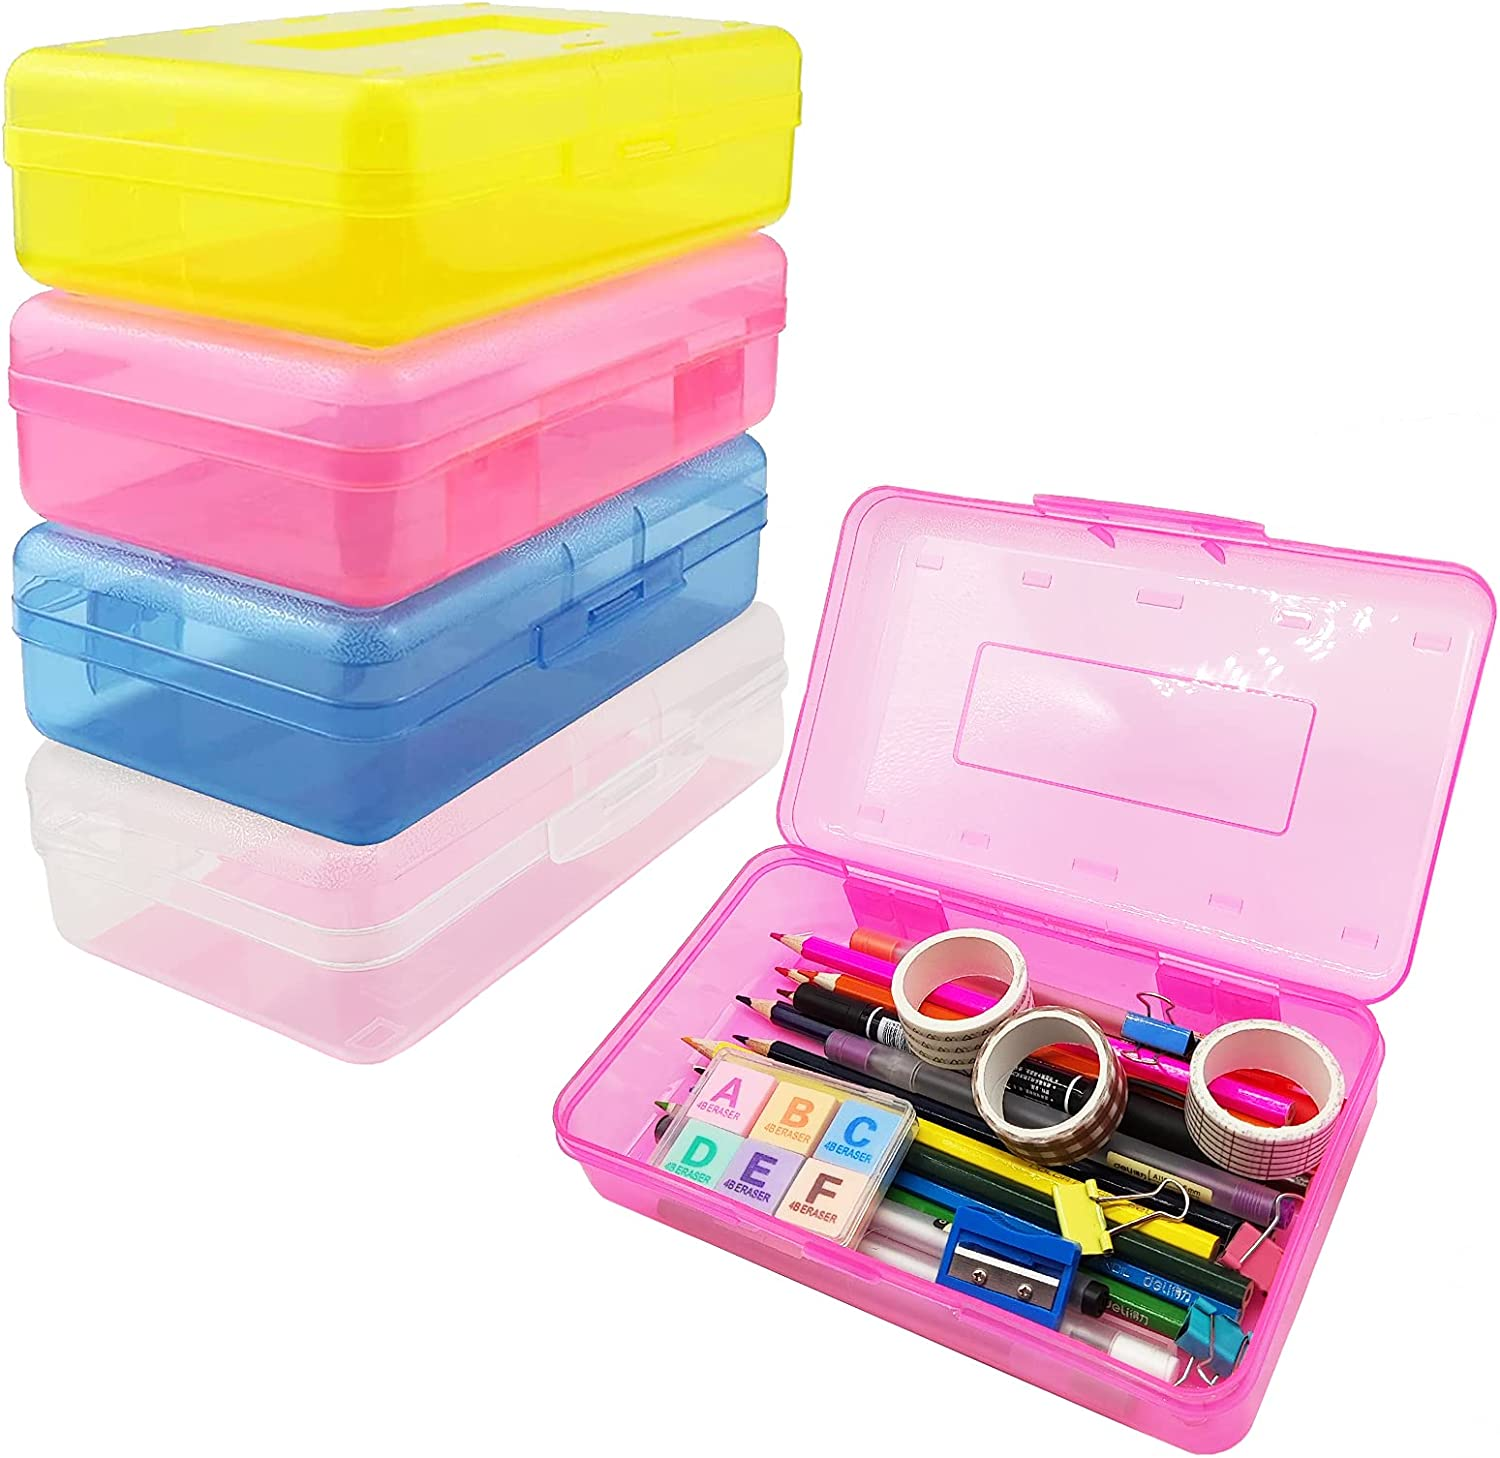 Nuozme Plastic Translucent Pencil Box for Kids, Large Capacity Pencil Cases with Snap Tight Lid, Stackable Pencil Holder Office Supplies Organizer for Pens Pencils School Supplies,1 Pack (Red)